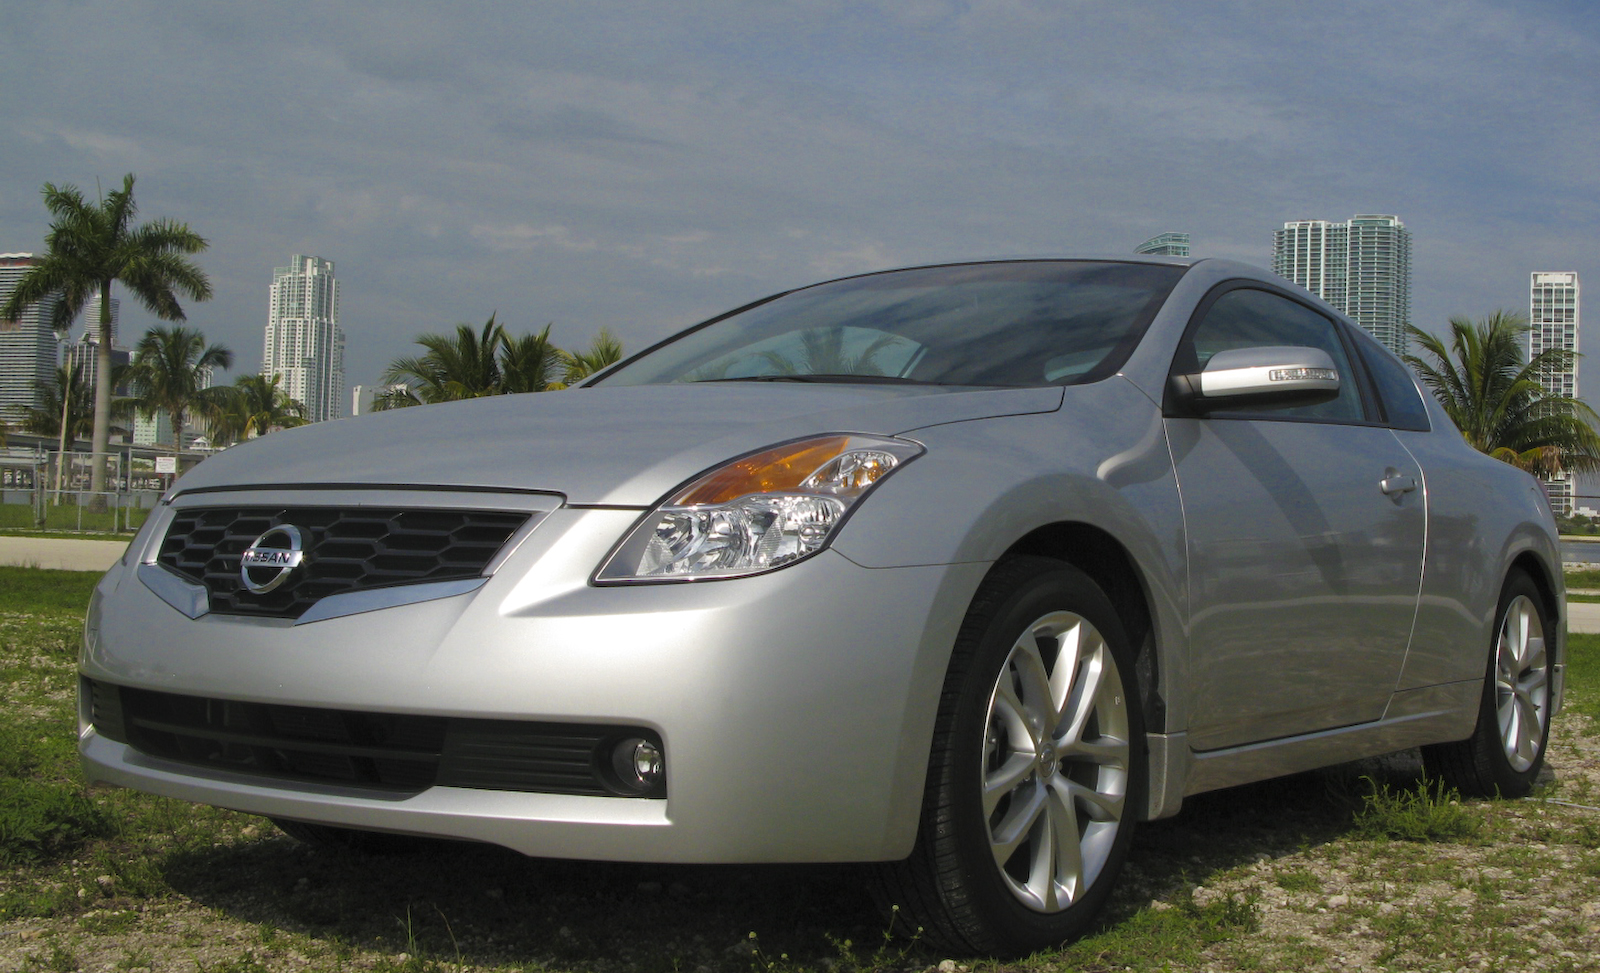 2009 nissan altima coupe 3 5 se gallery 303336 top speed. Black Bedroom Furniture Sets. Home Design Ideas